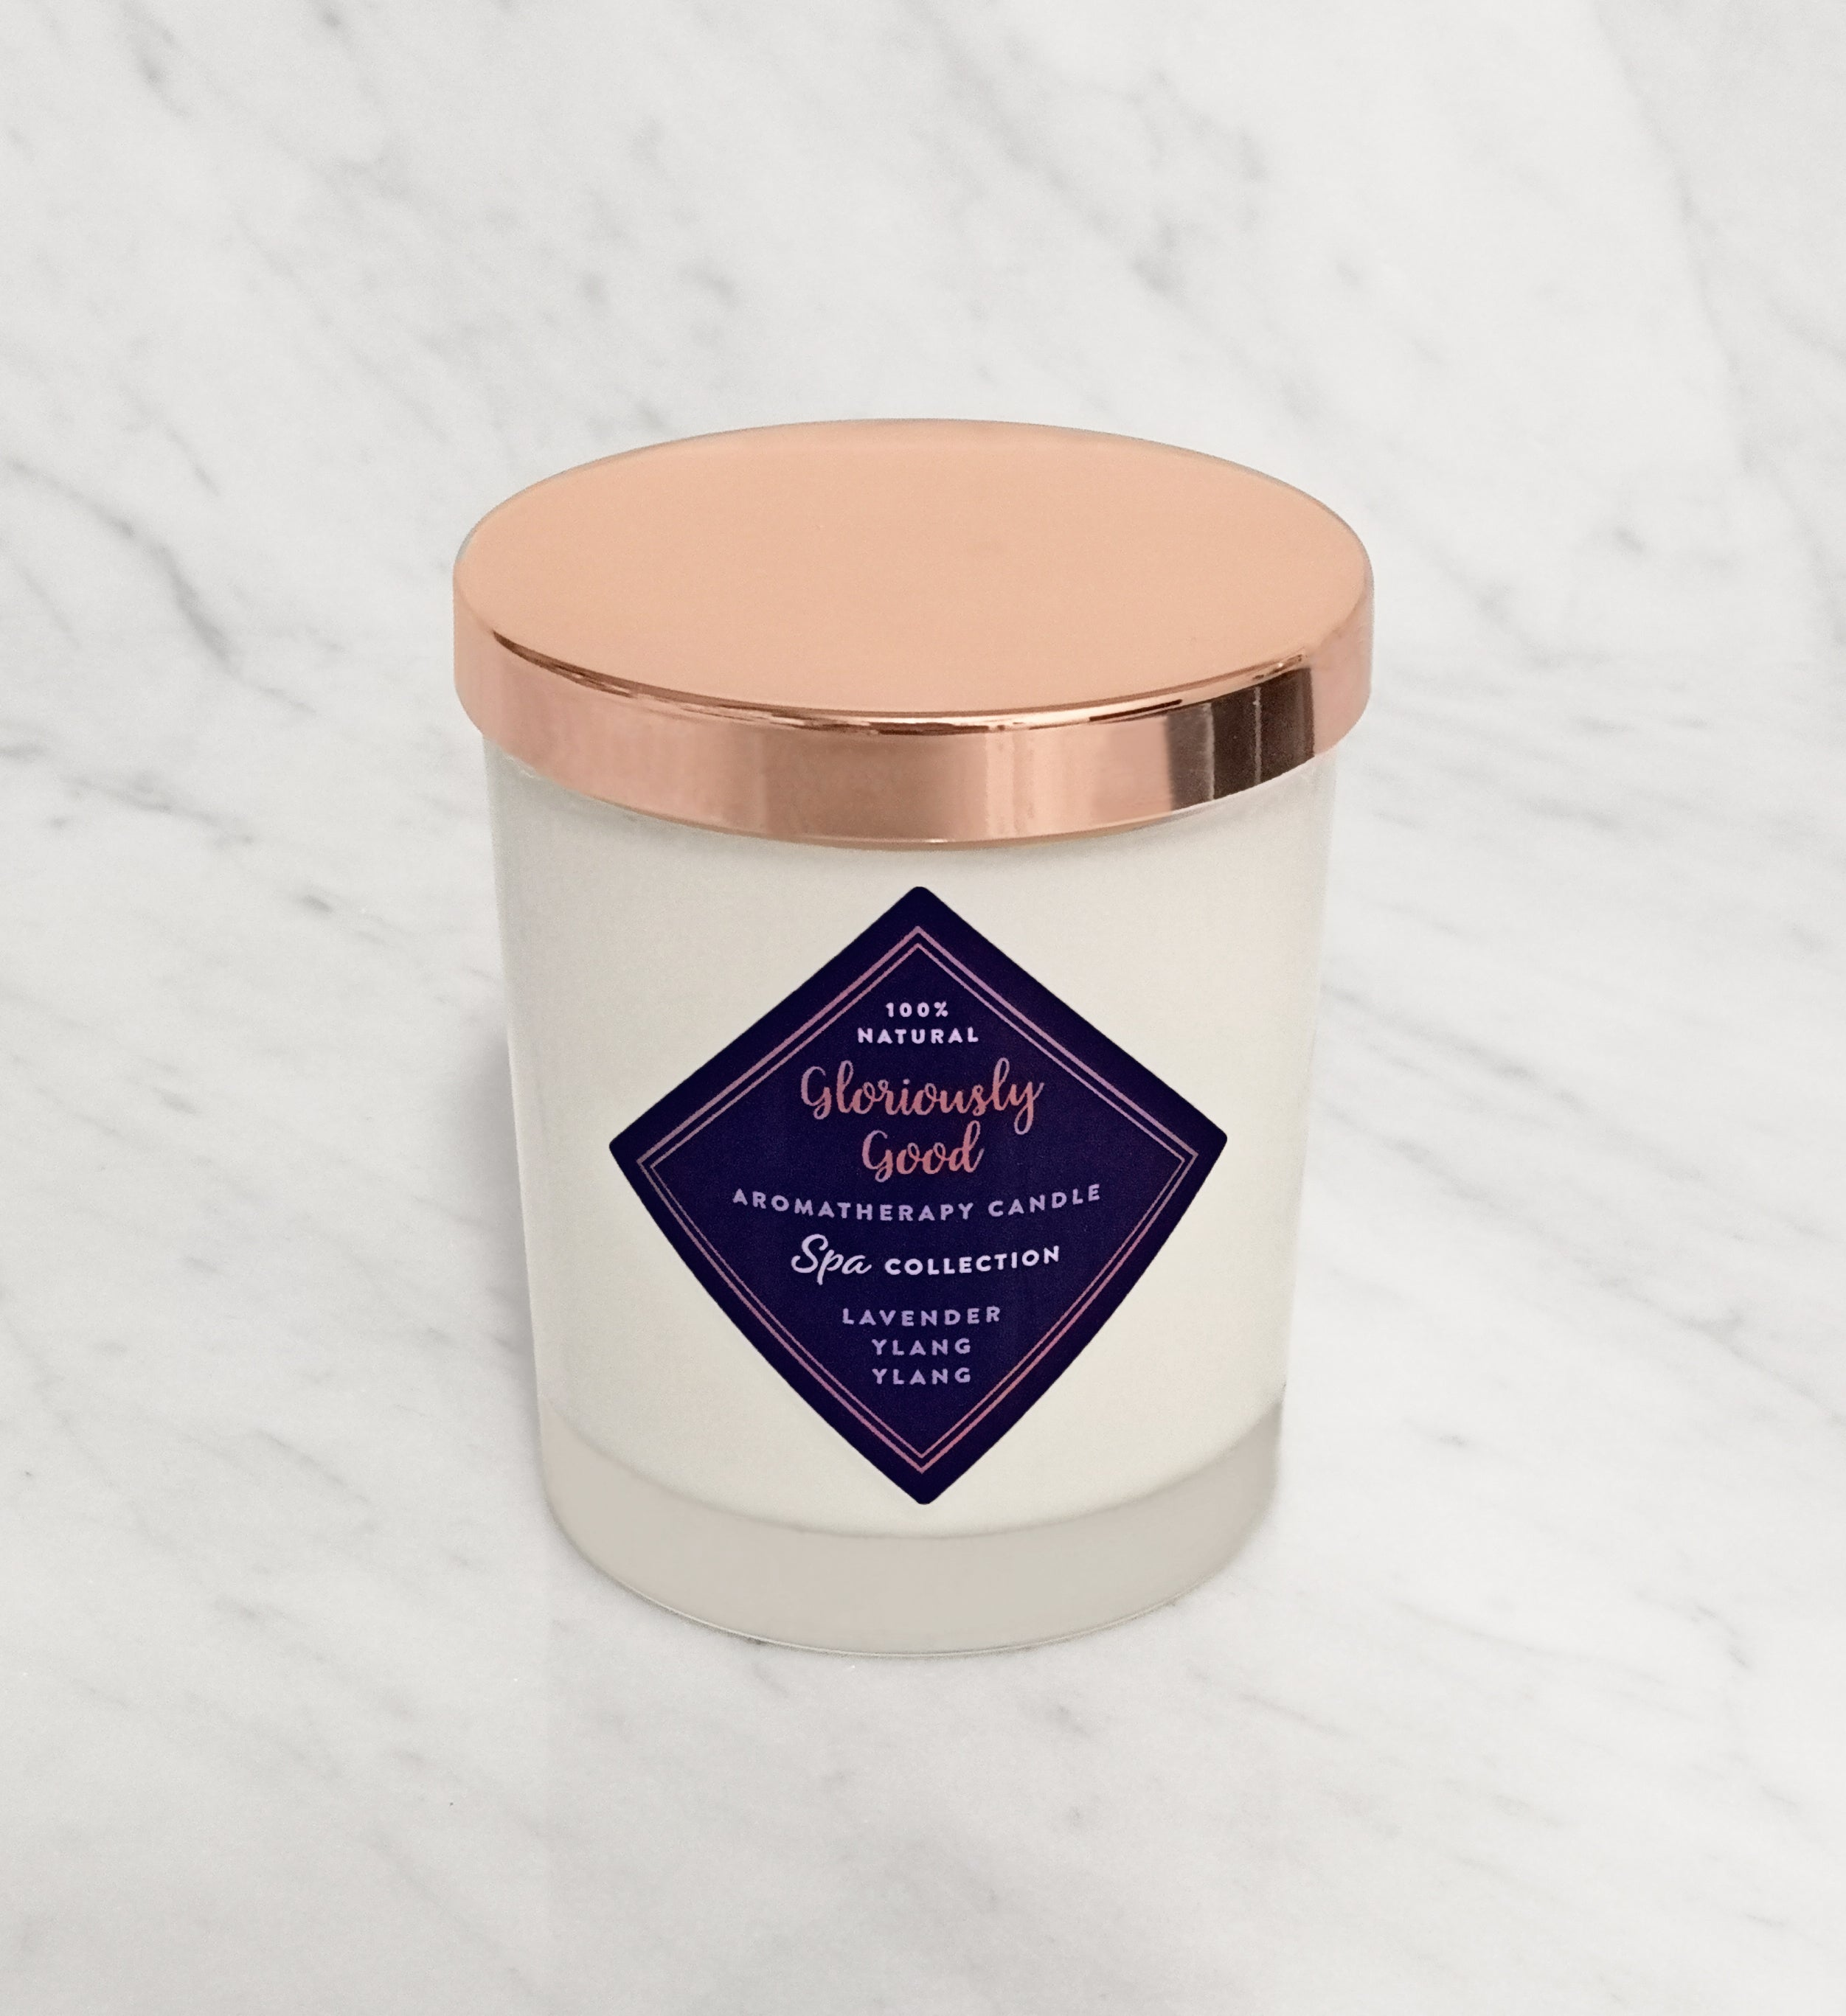 Lavender and Ylang Ylang aromatherapy candle with rose gold lid hand poured natural soy wax with essential oils